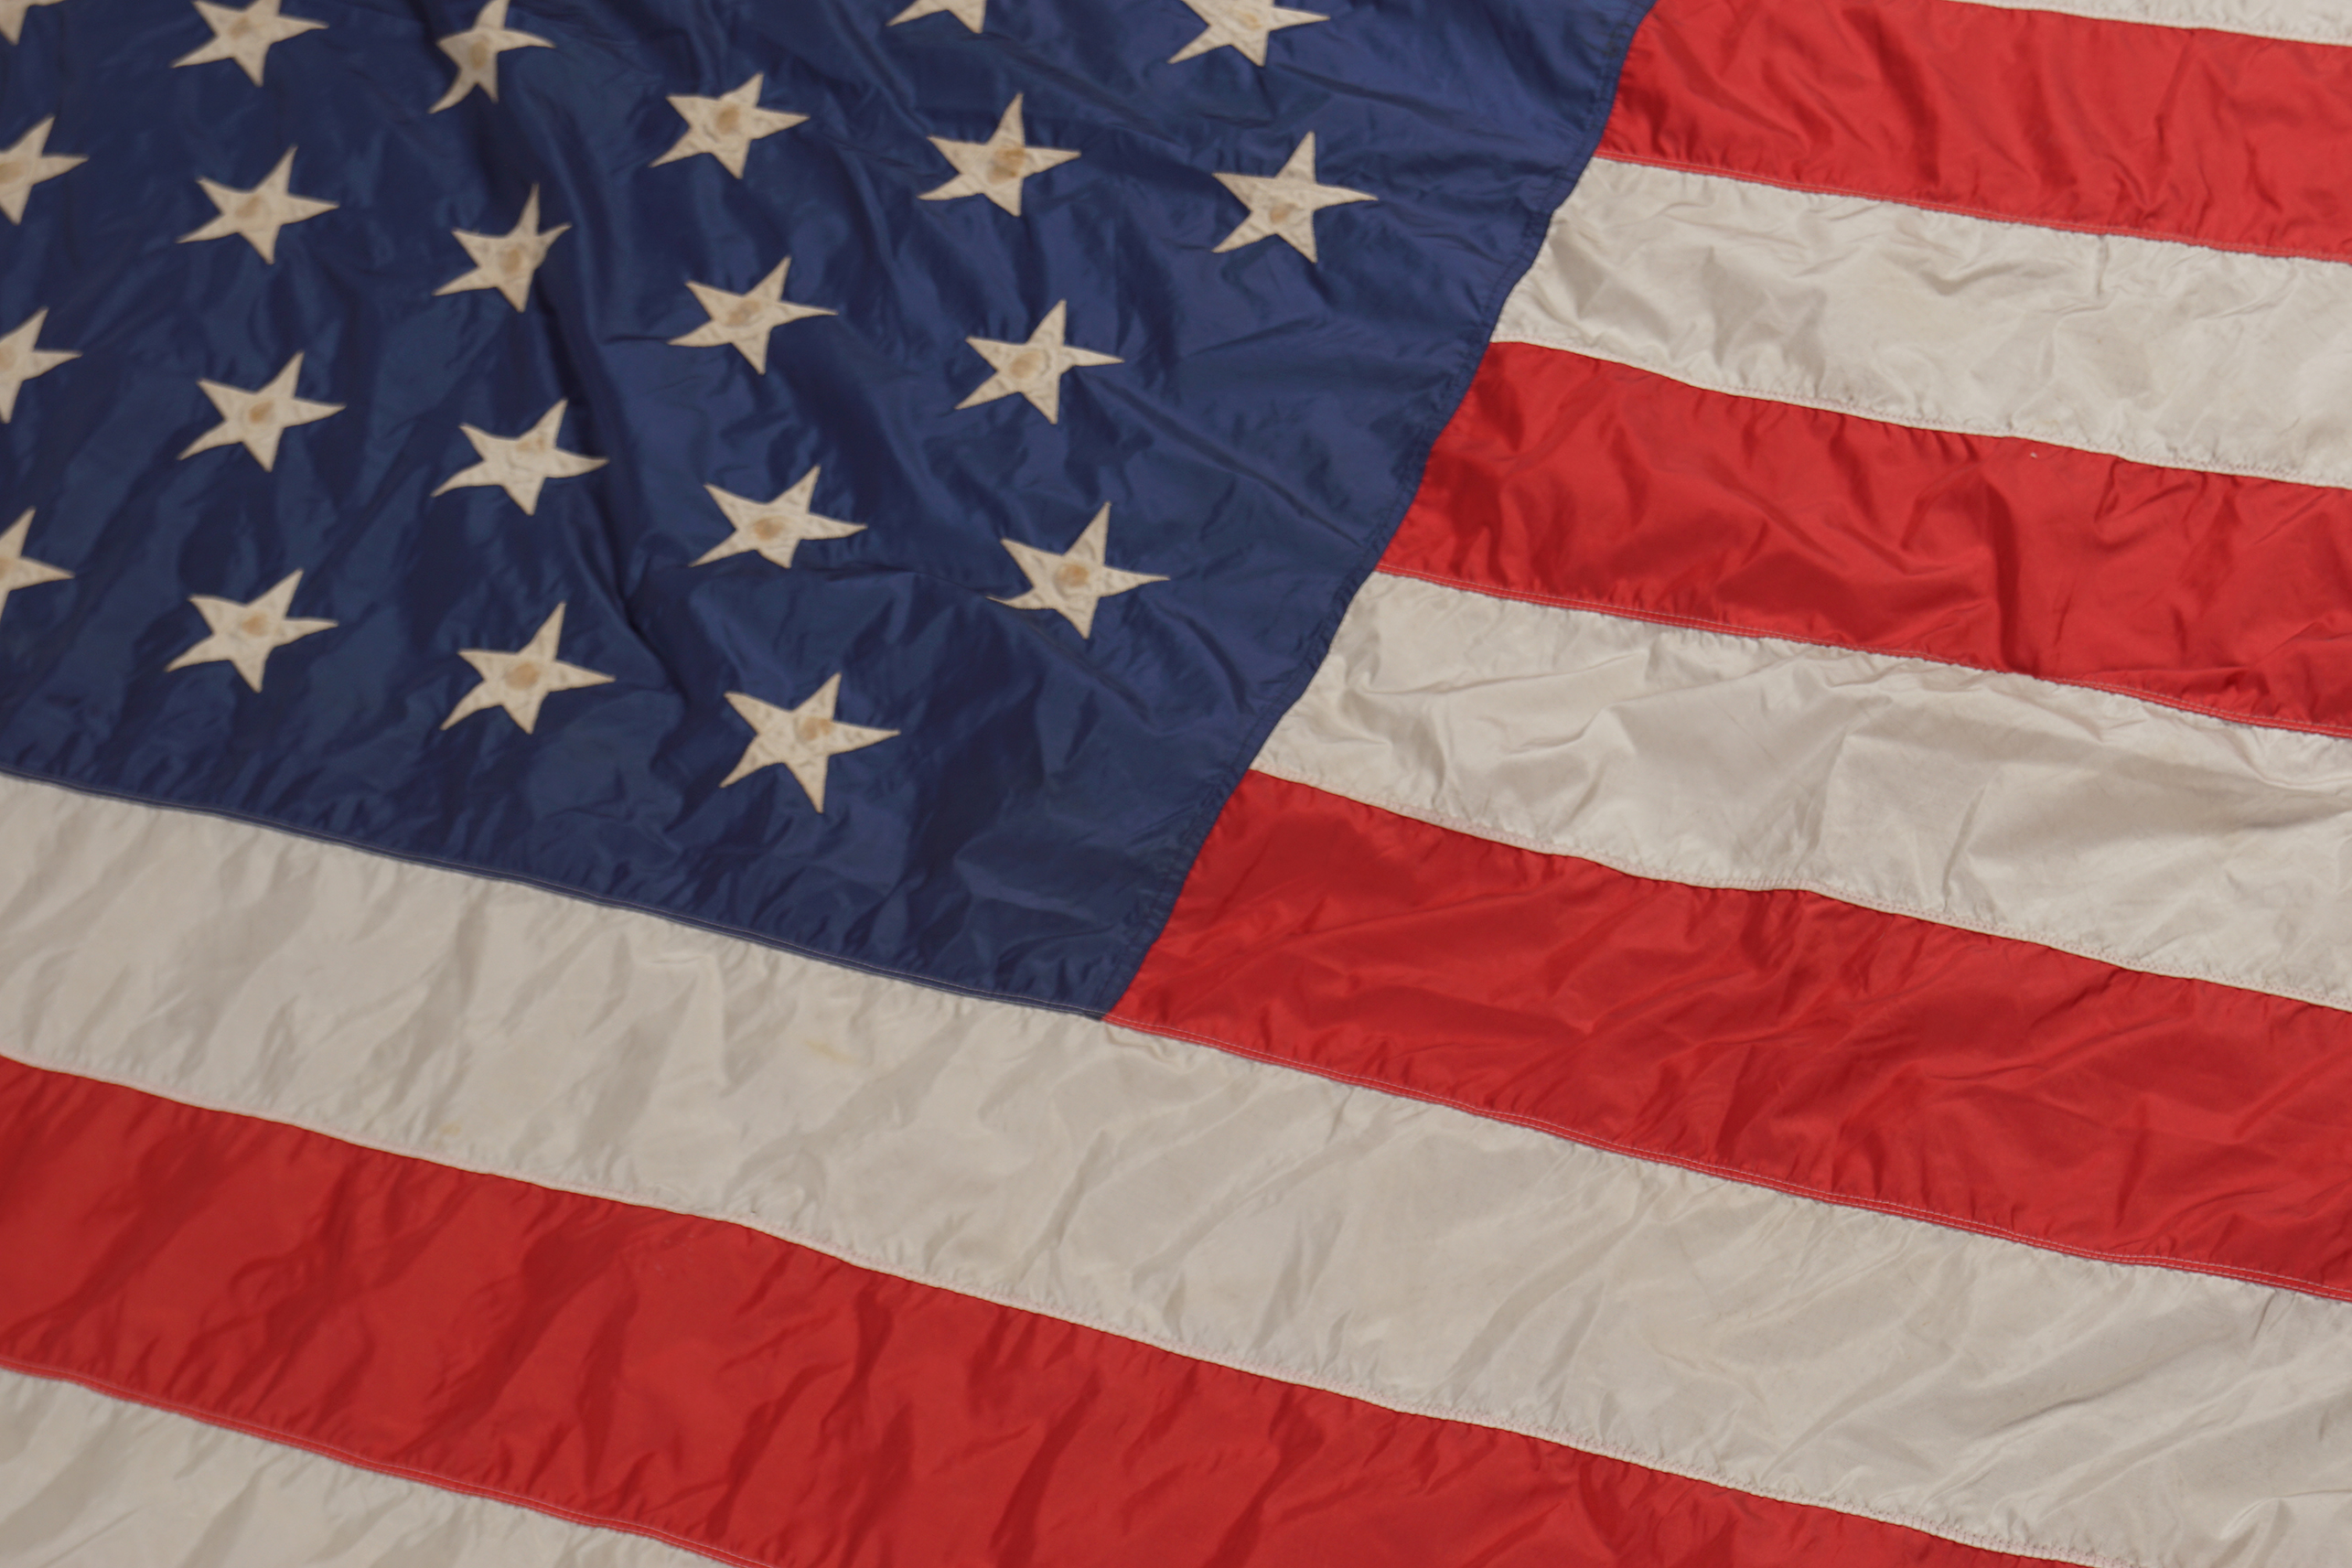 AMERICAN FLAG - Image 2 of 2